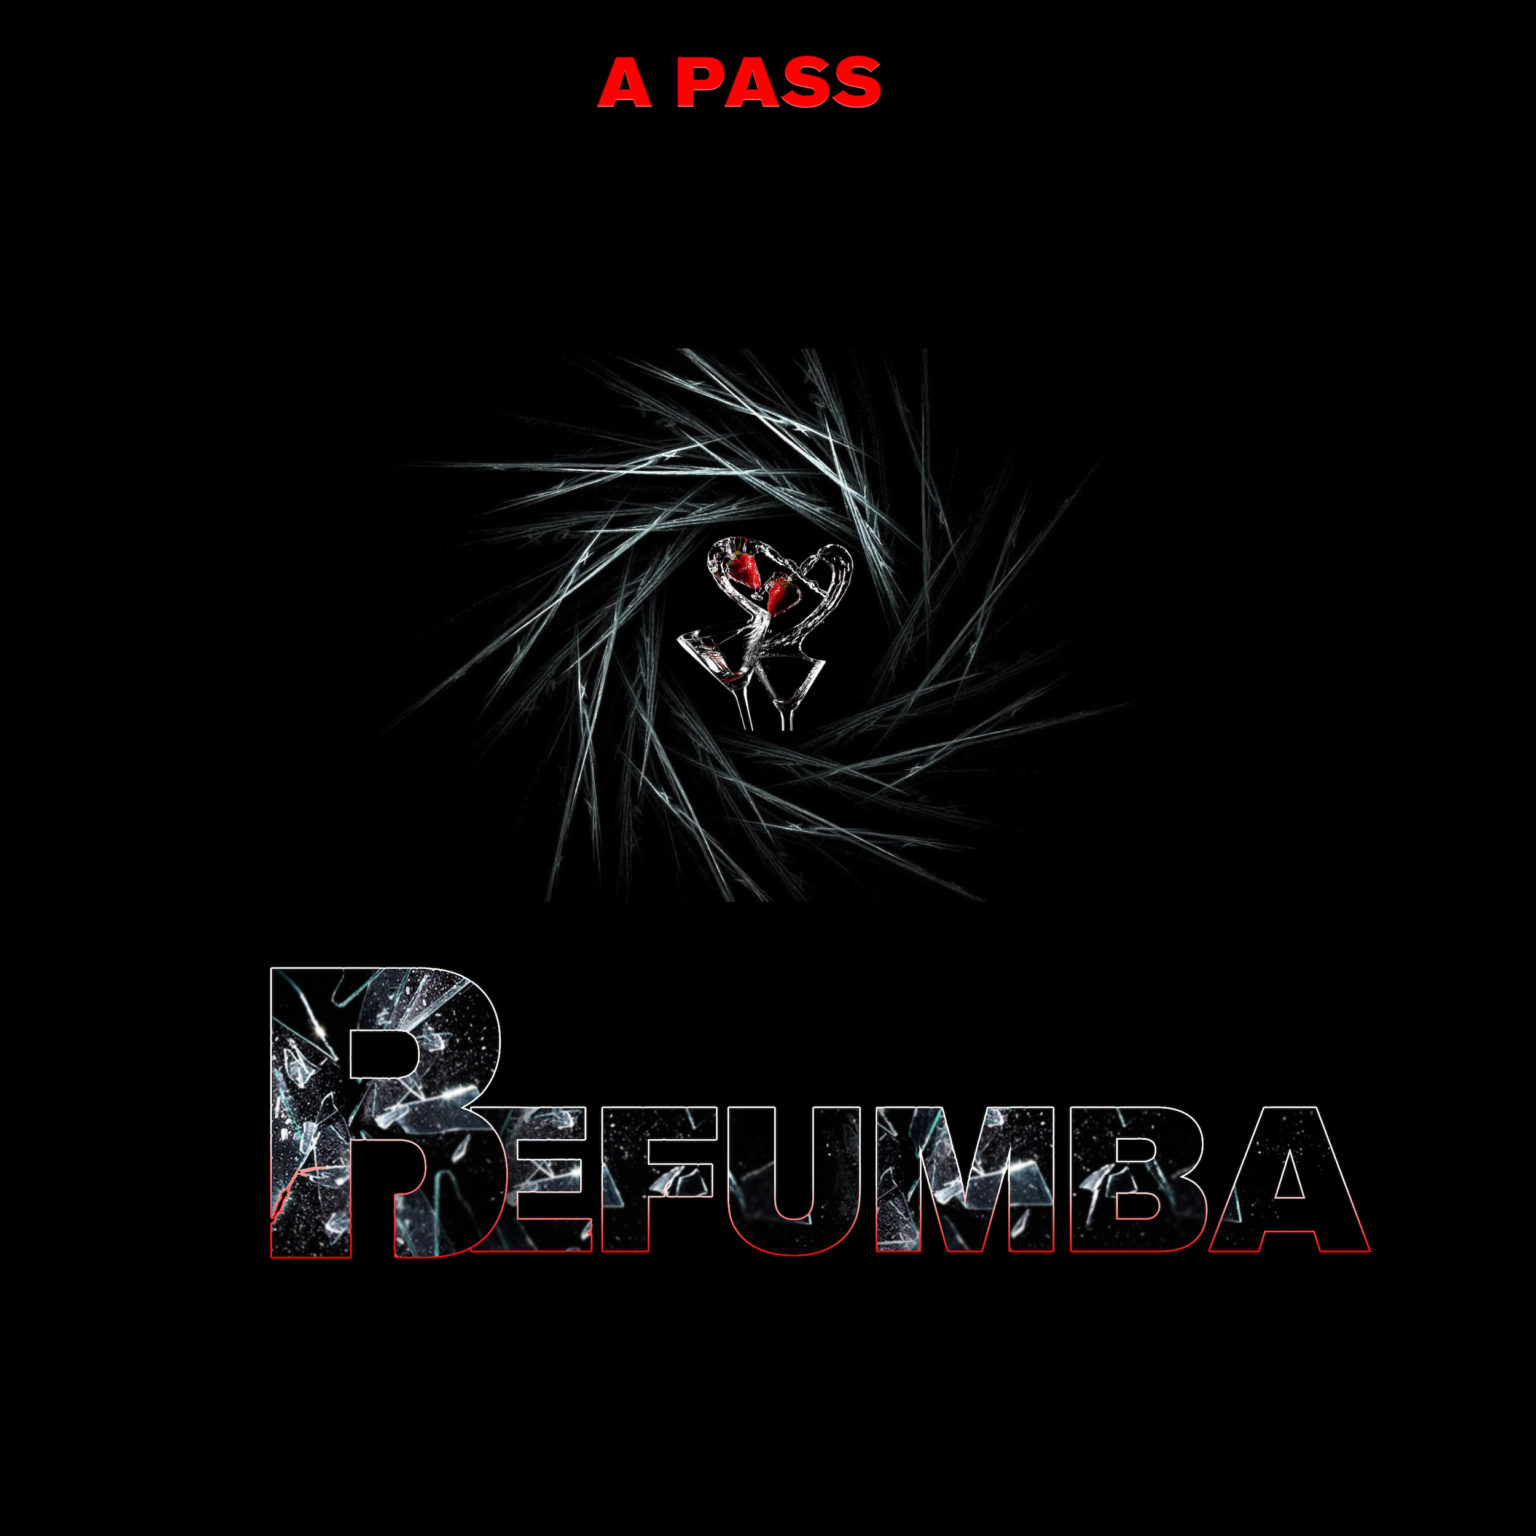 Befumba by A pass